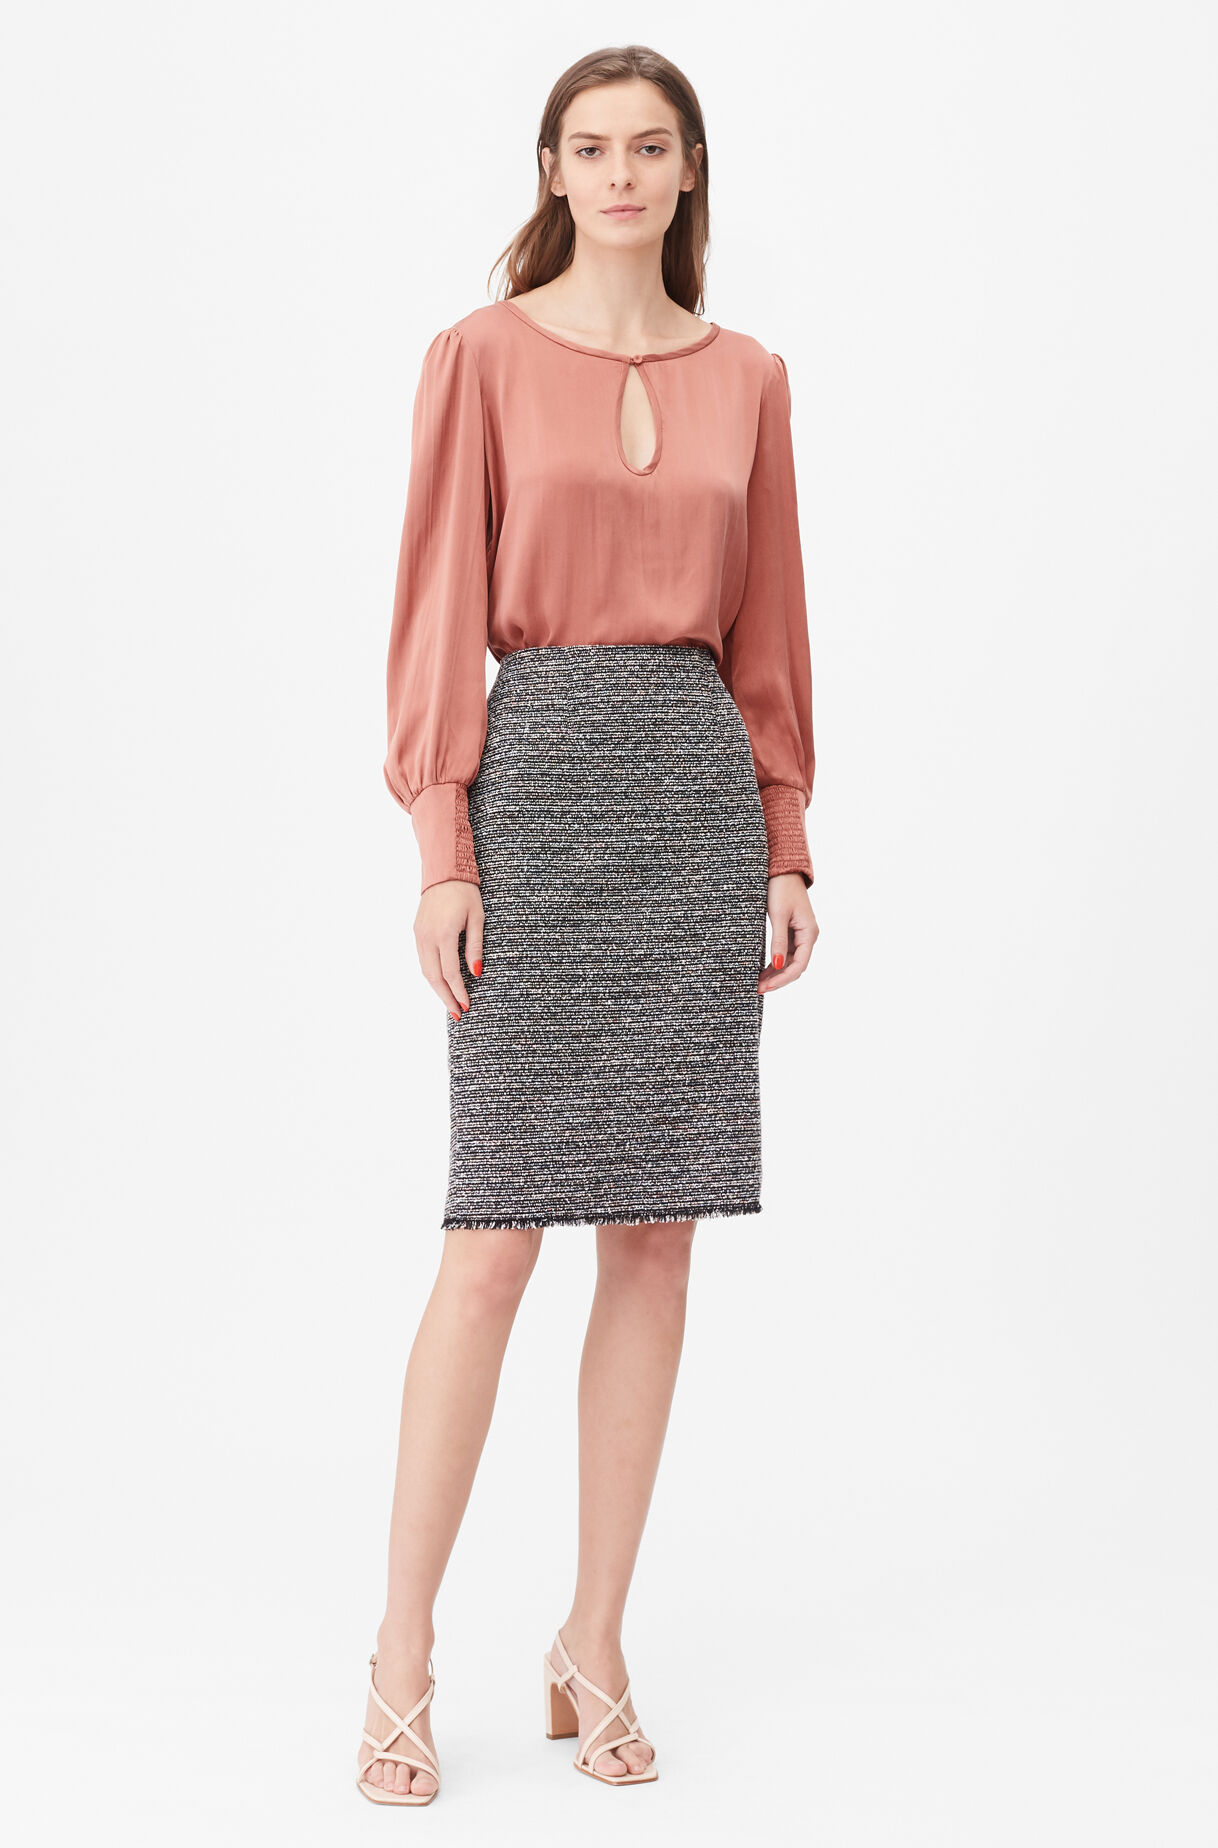 Tailored Static Tweed Pencil Skirt, , large